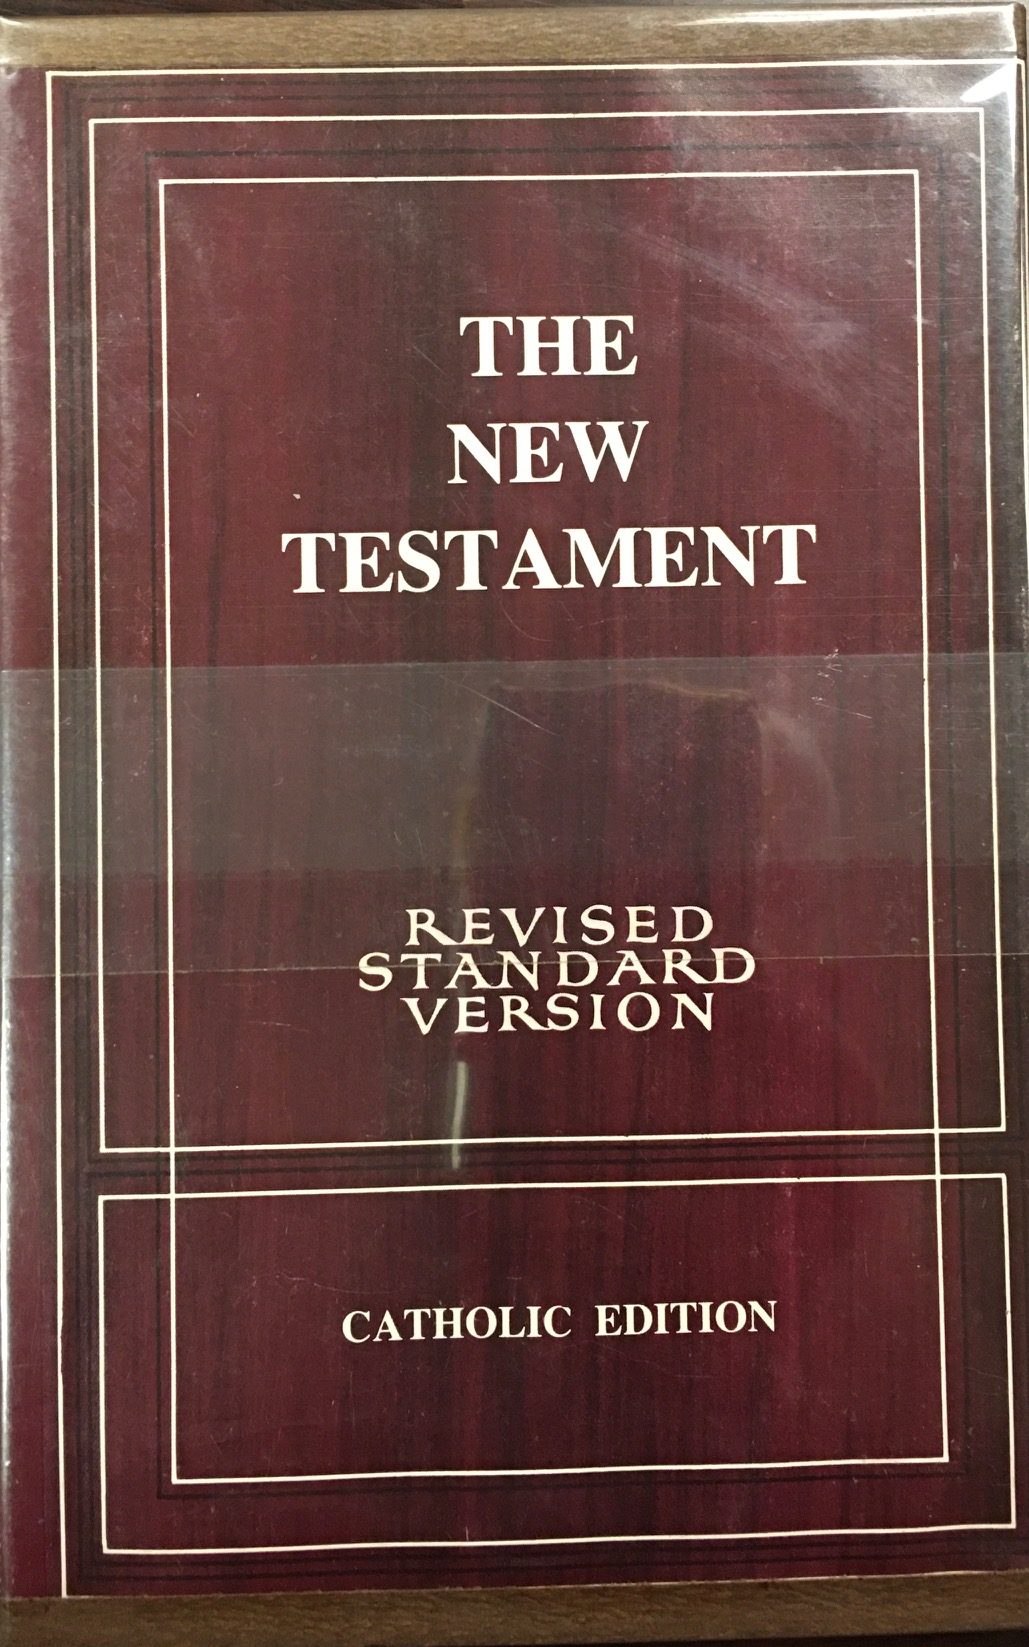 Image for The New Testament of our Lord and Savior Jesus Christ: Revised Standard Version - Catholic Edition: translated from the Greek, being the version set forth A.D. 1611, revised A.D. 1881 and A.D. 1901, compared with the most ancient authorities and revised A.D. 1946